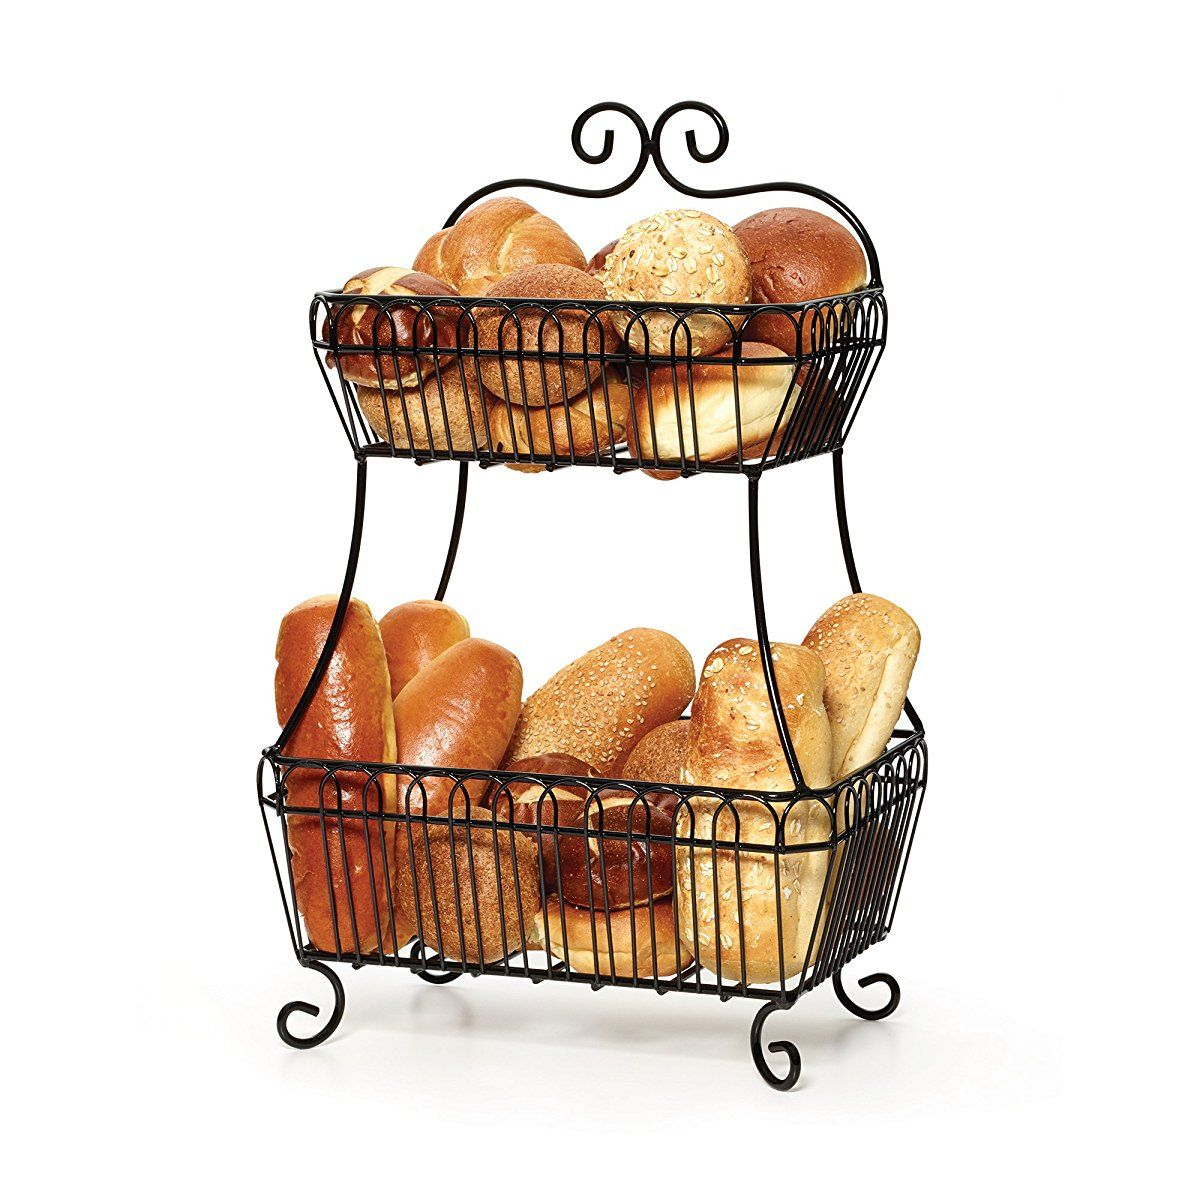 Gourmet Basics by Mikasa Countryside 2-Tier Flat-Back Metal Basket ...